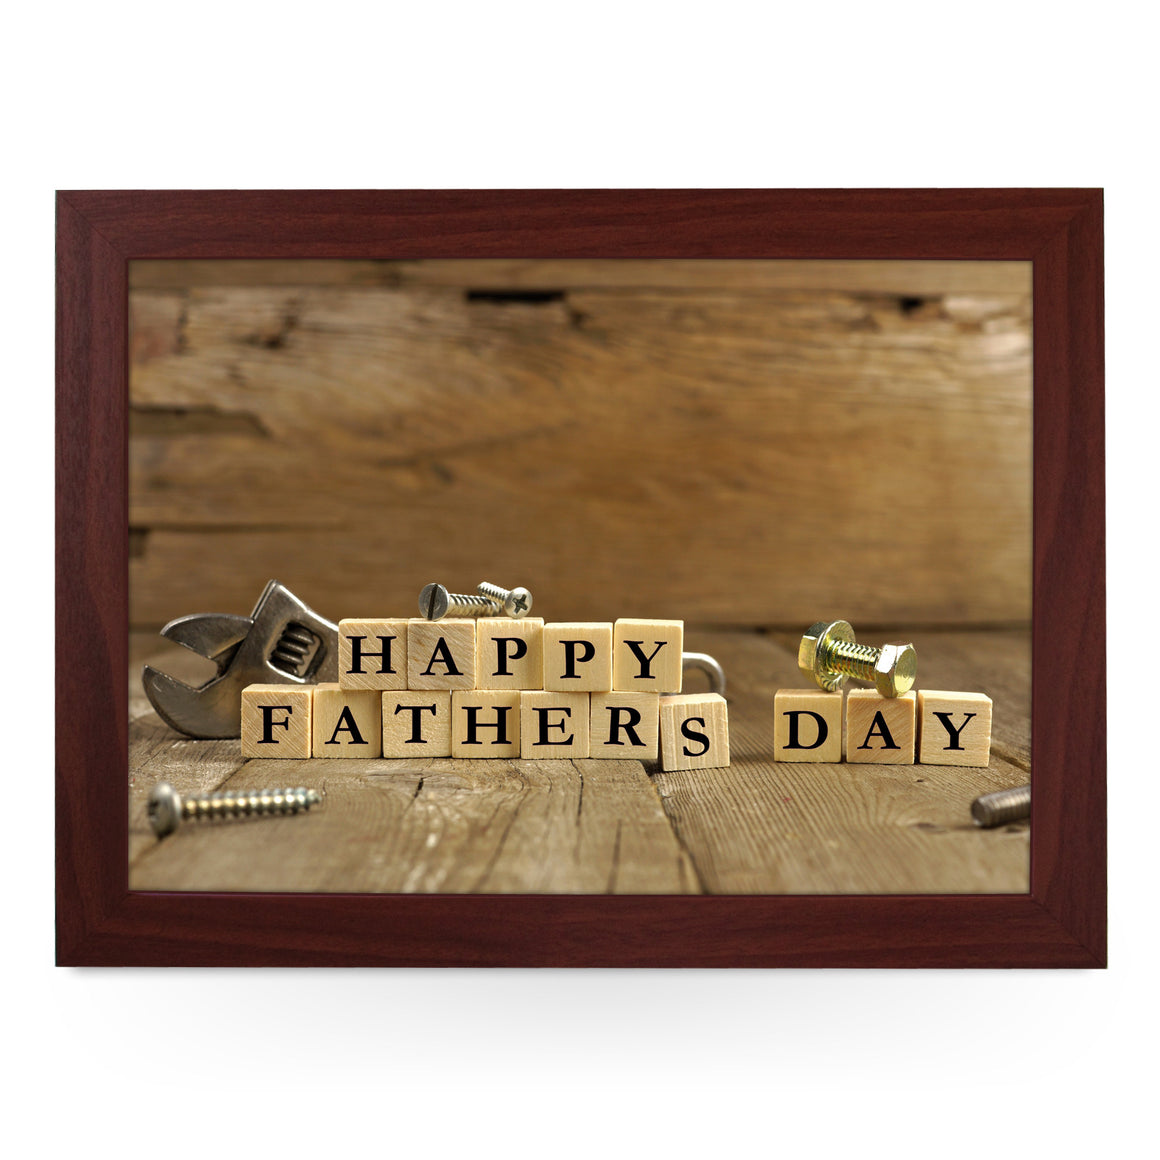 Happy Father's Day Wood Blocks Lap Tray - L0738